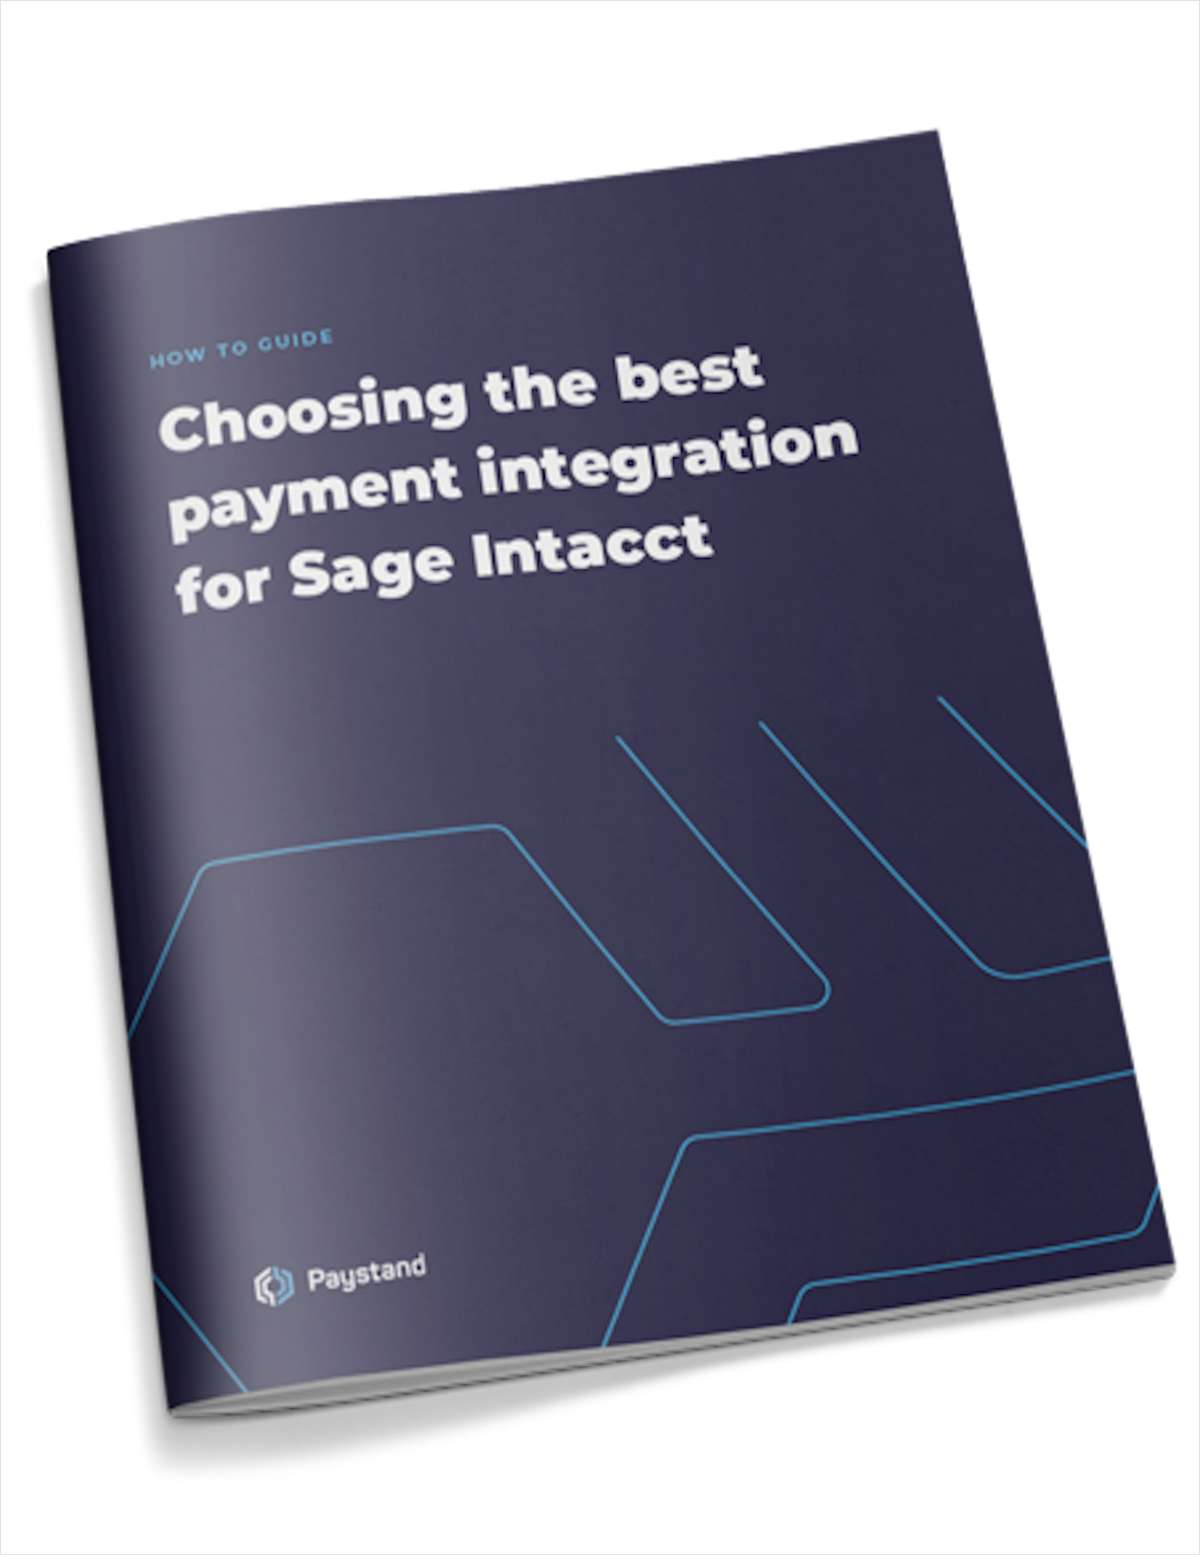 How to Choose the Best Payment Integration for Sage Intacct